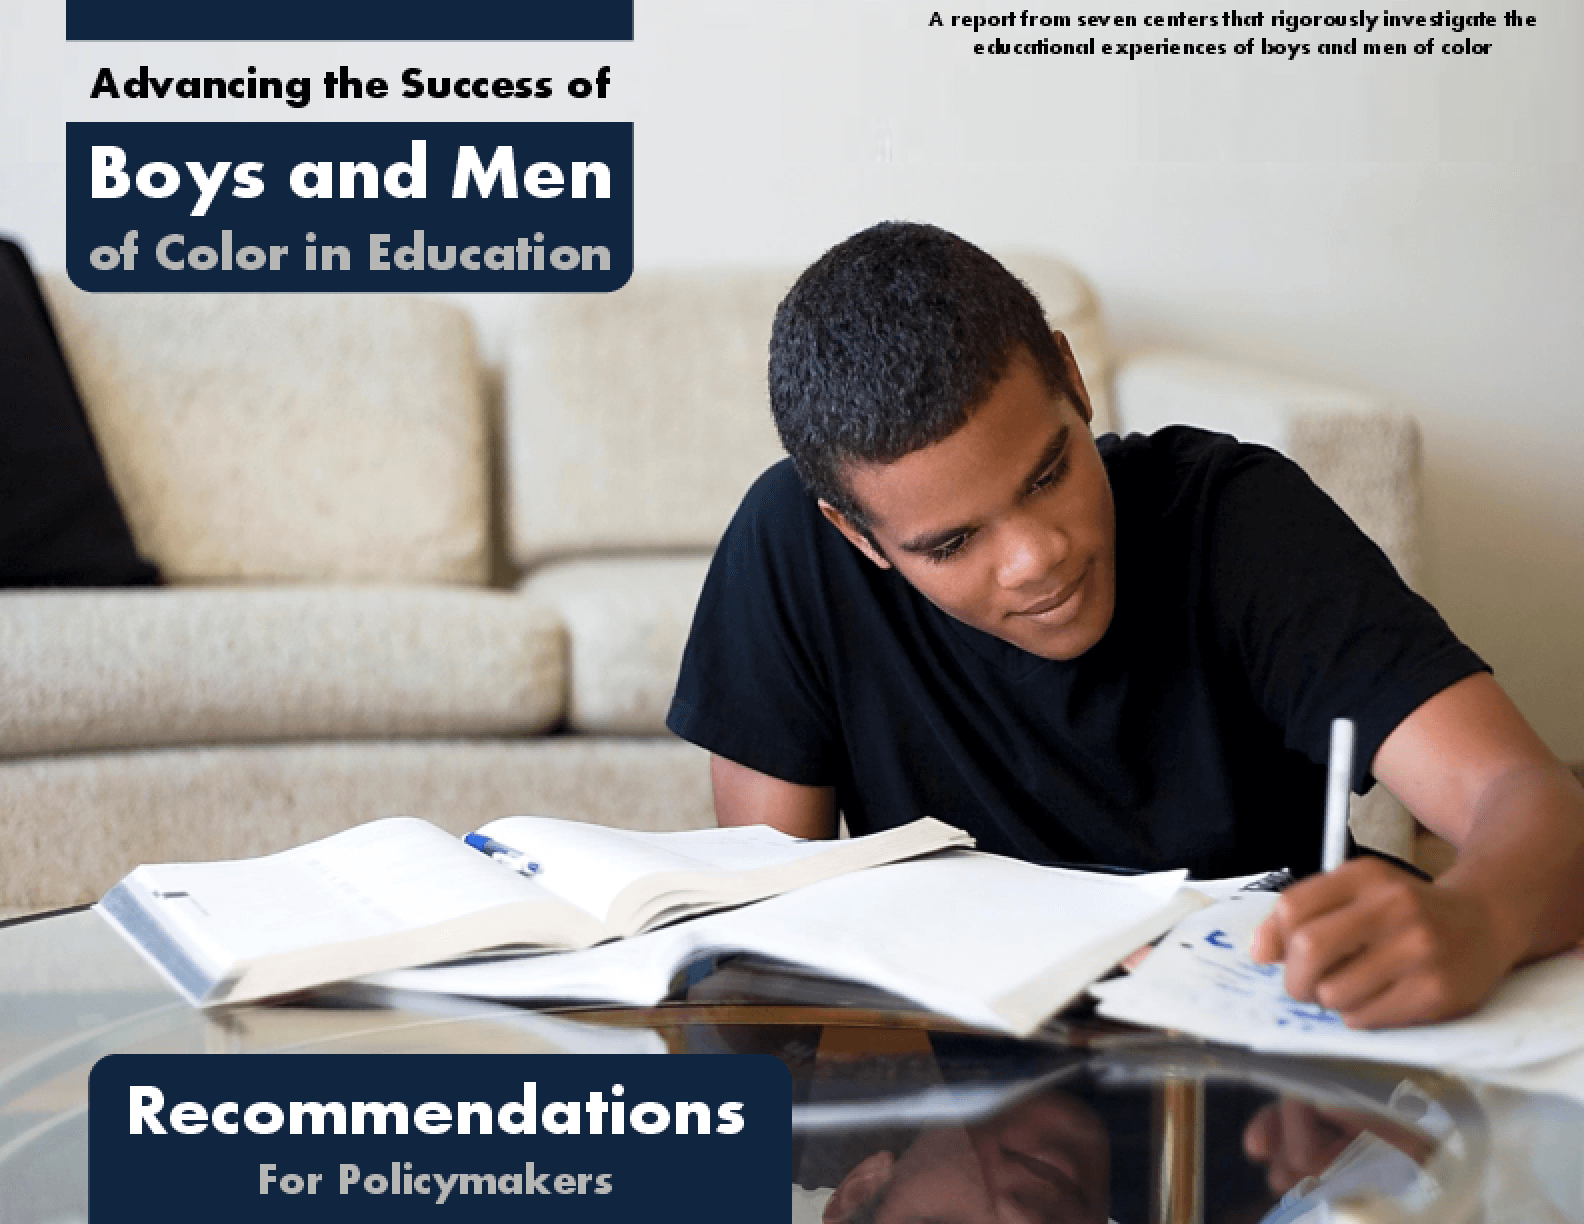 Advancing the Success of Boys and Men of Color in Education